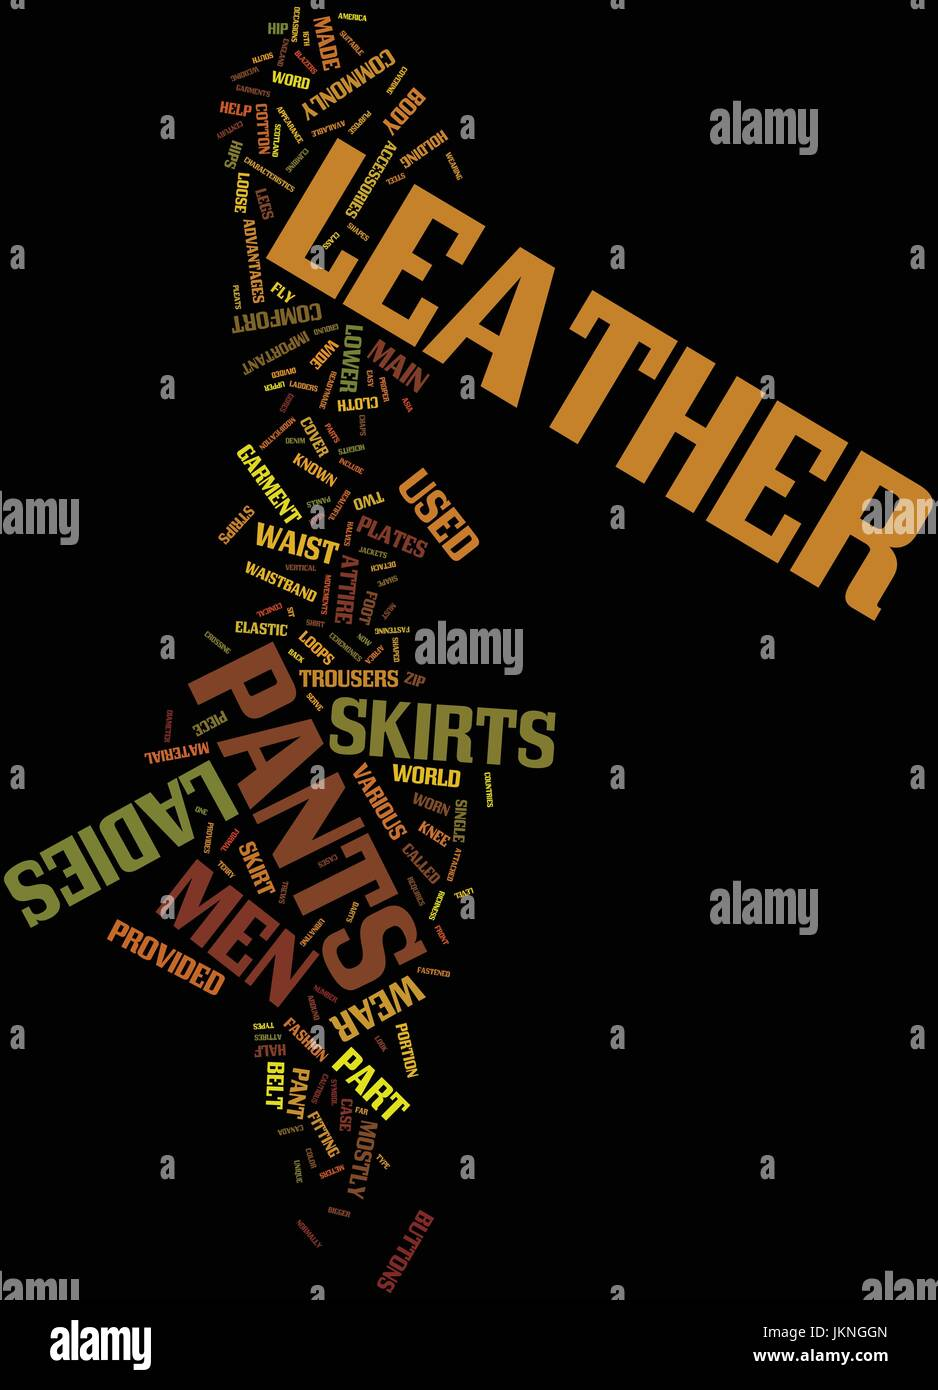 MEN S LEATHER PANTS AND LADIES LEATHER SKIRTS Text Background Word Cloud Concept - Stock Vector